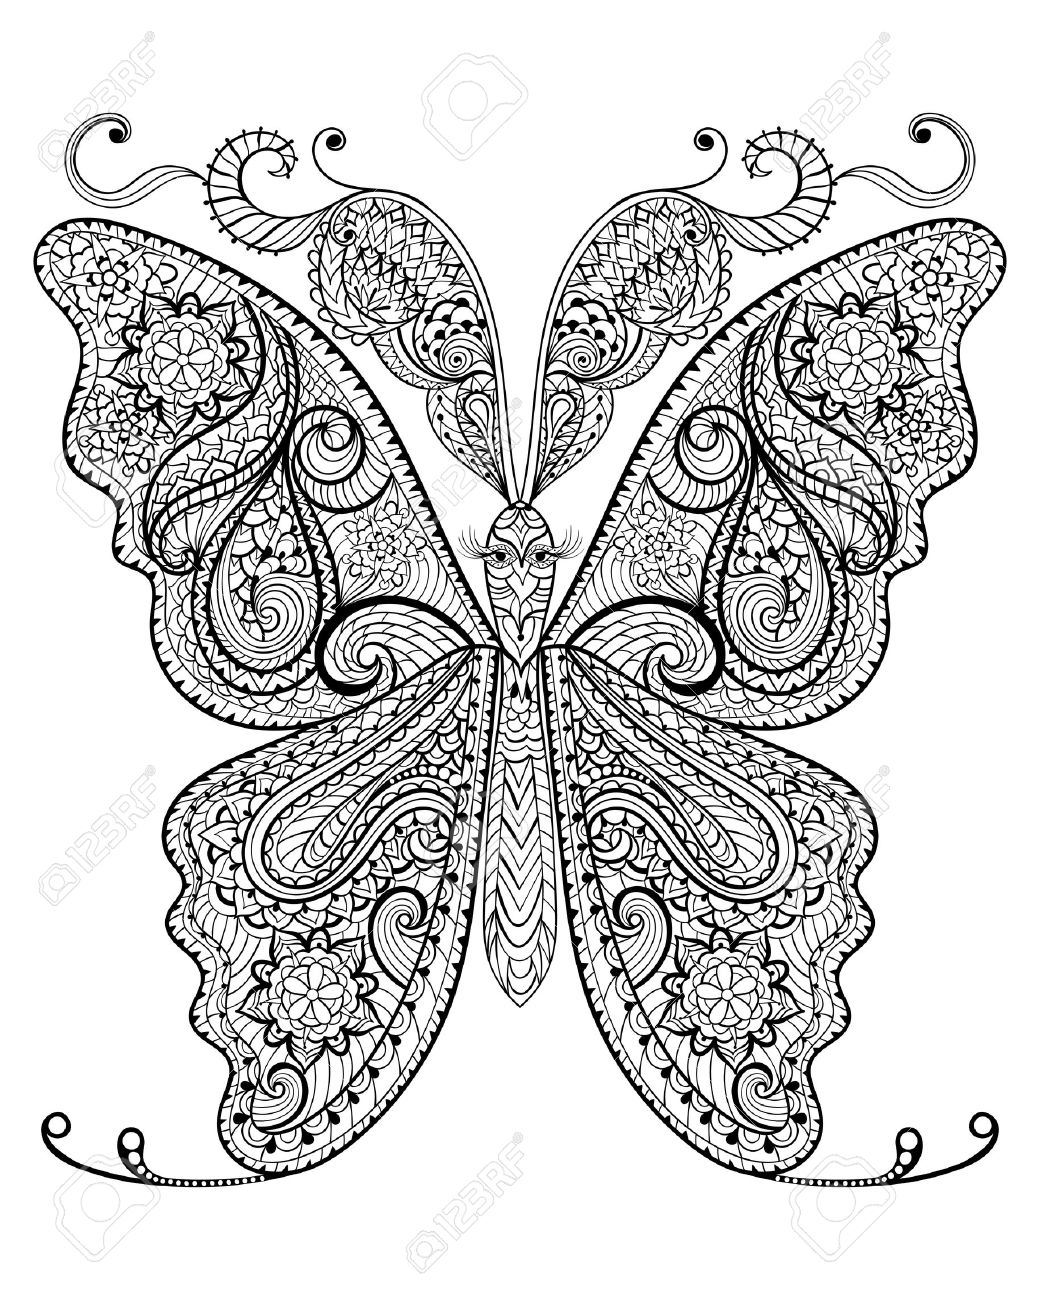 Stress free coloring images - Hand Drawn Magic Butterfly For Adult Anti Stress Coloring Page With High Details Isolated On White